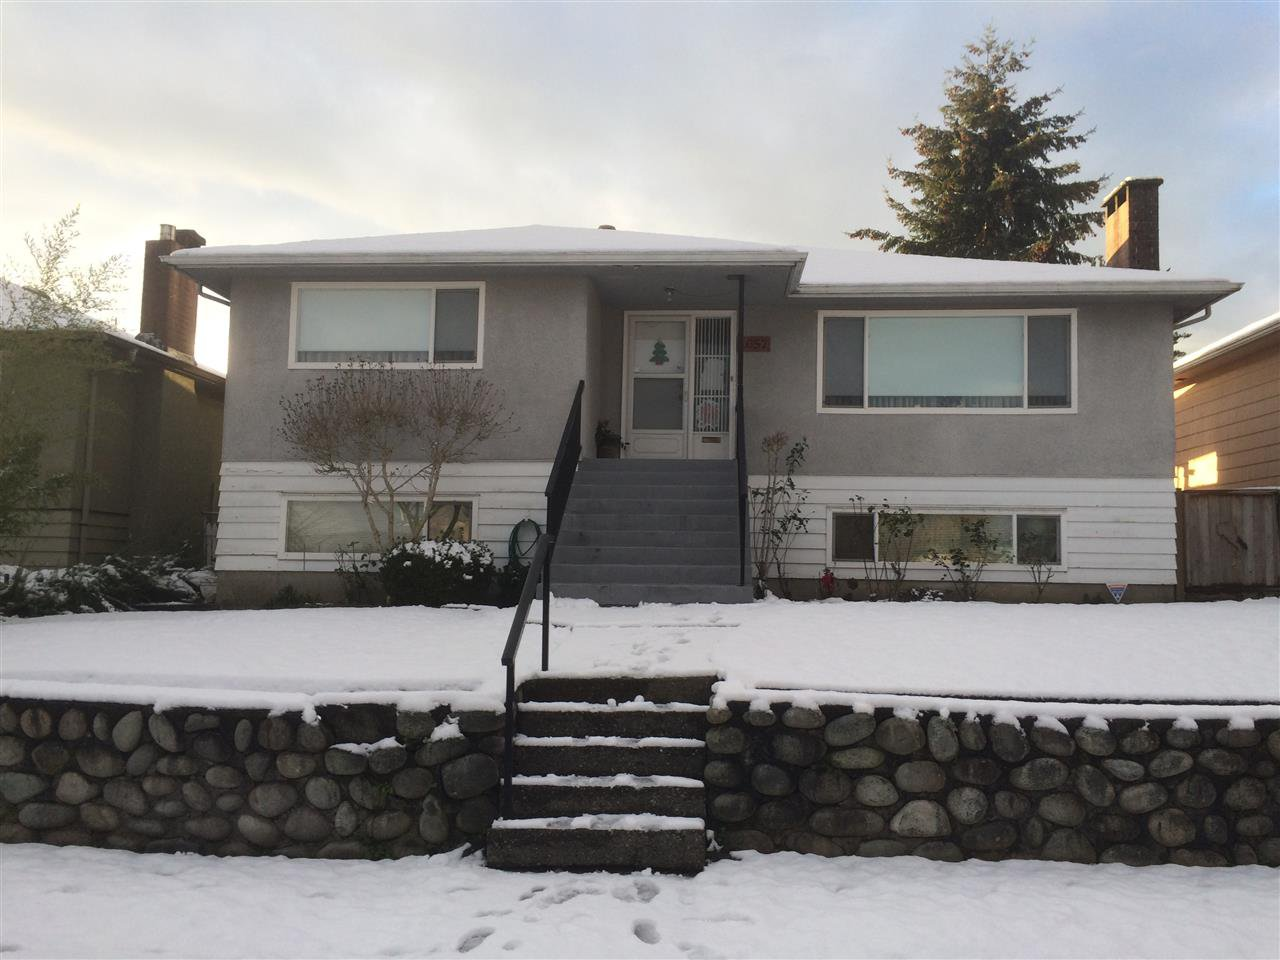 Main Photo: 1057 WINDERMERE STREET in Vancouver: Renfrew VE House for sale (Vancouver East)  : MLS®# R2128134